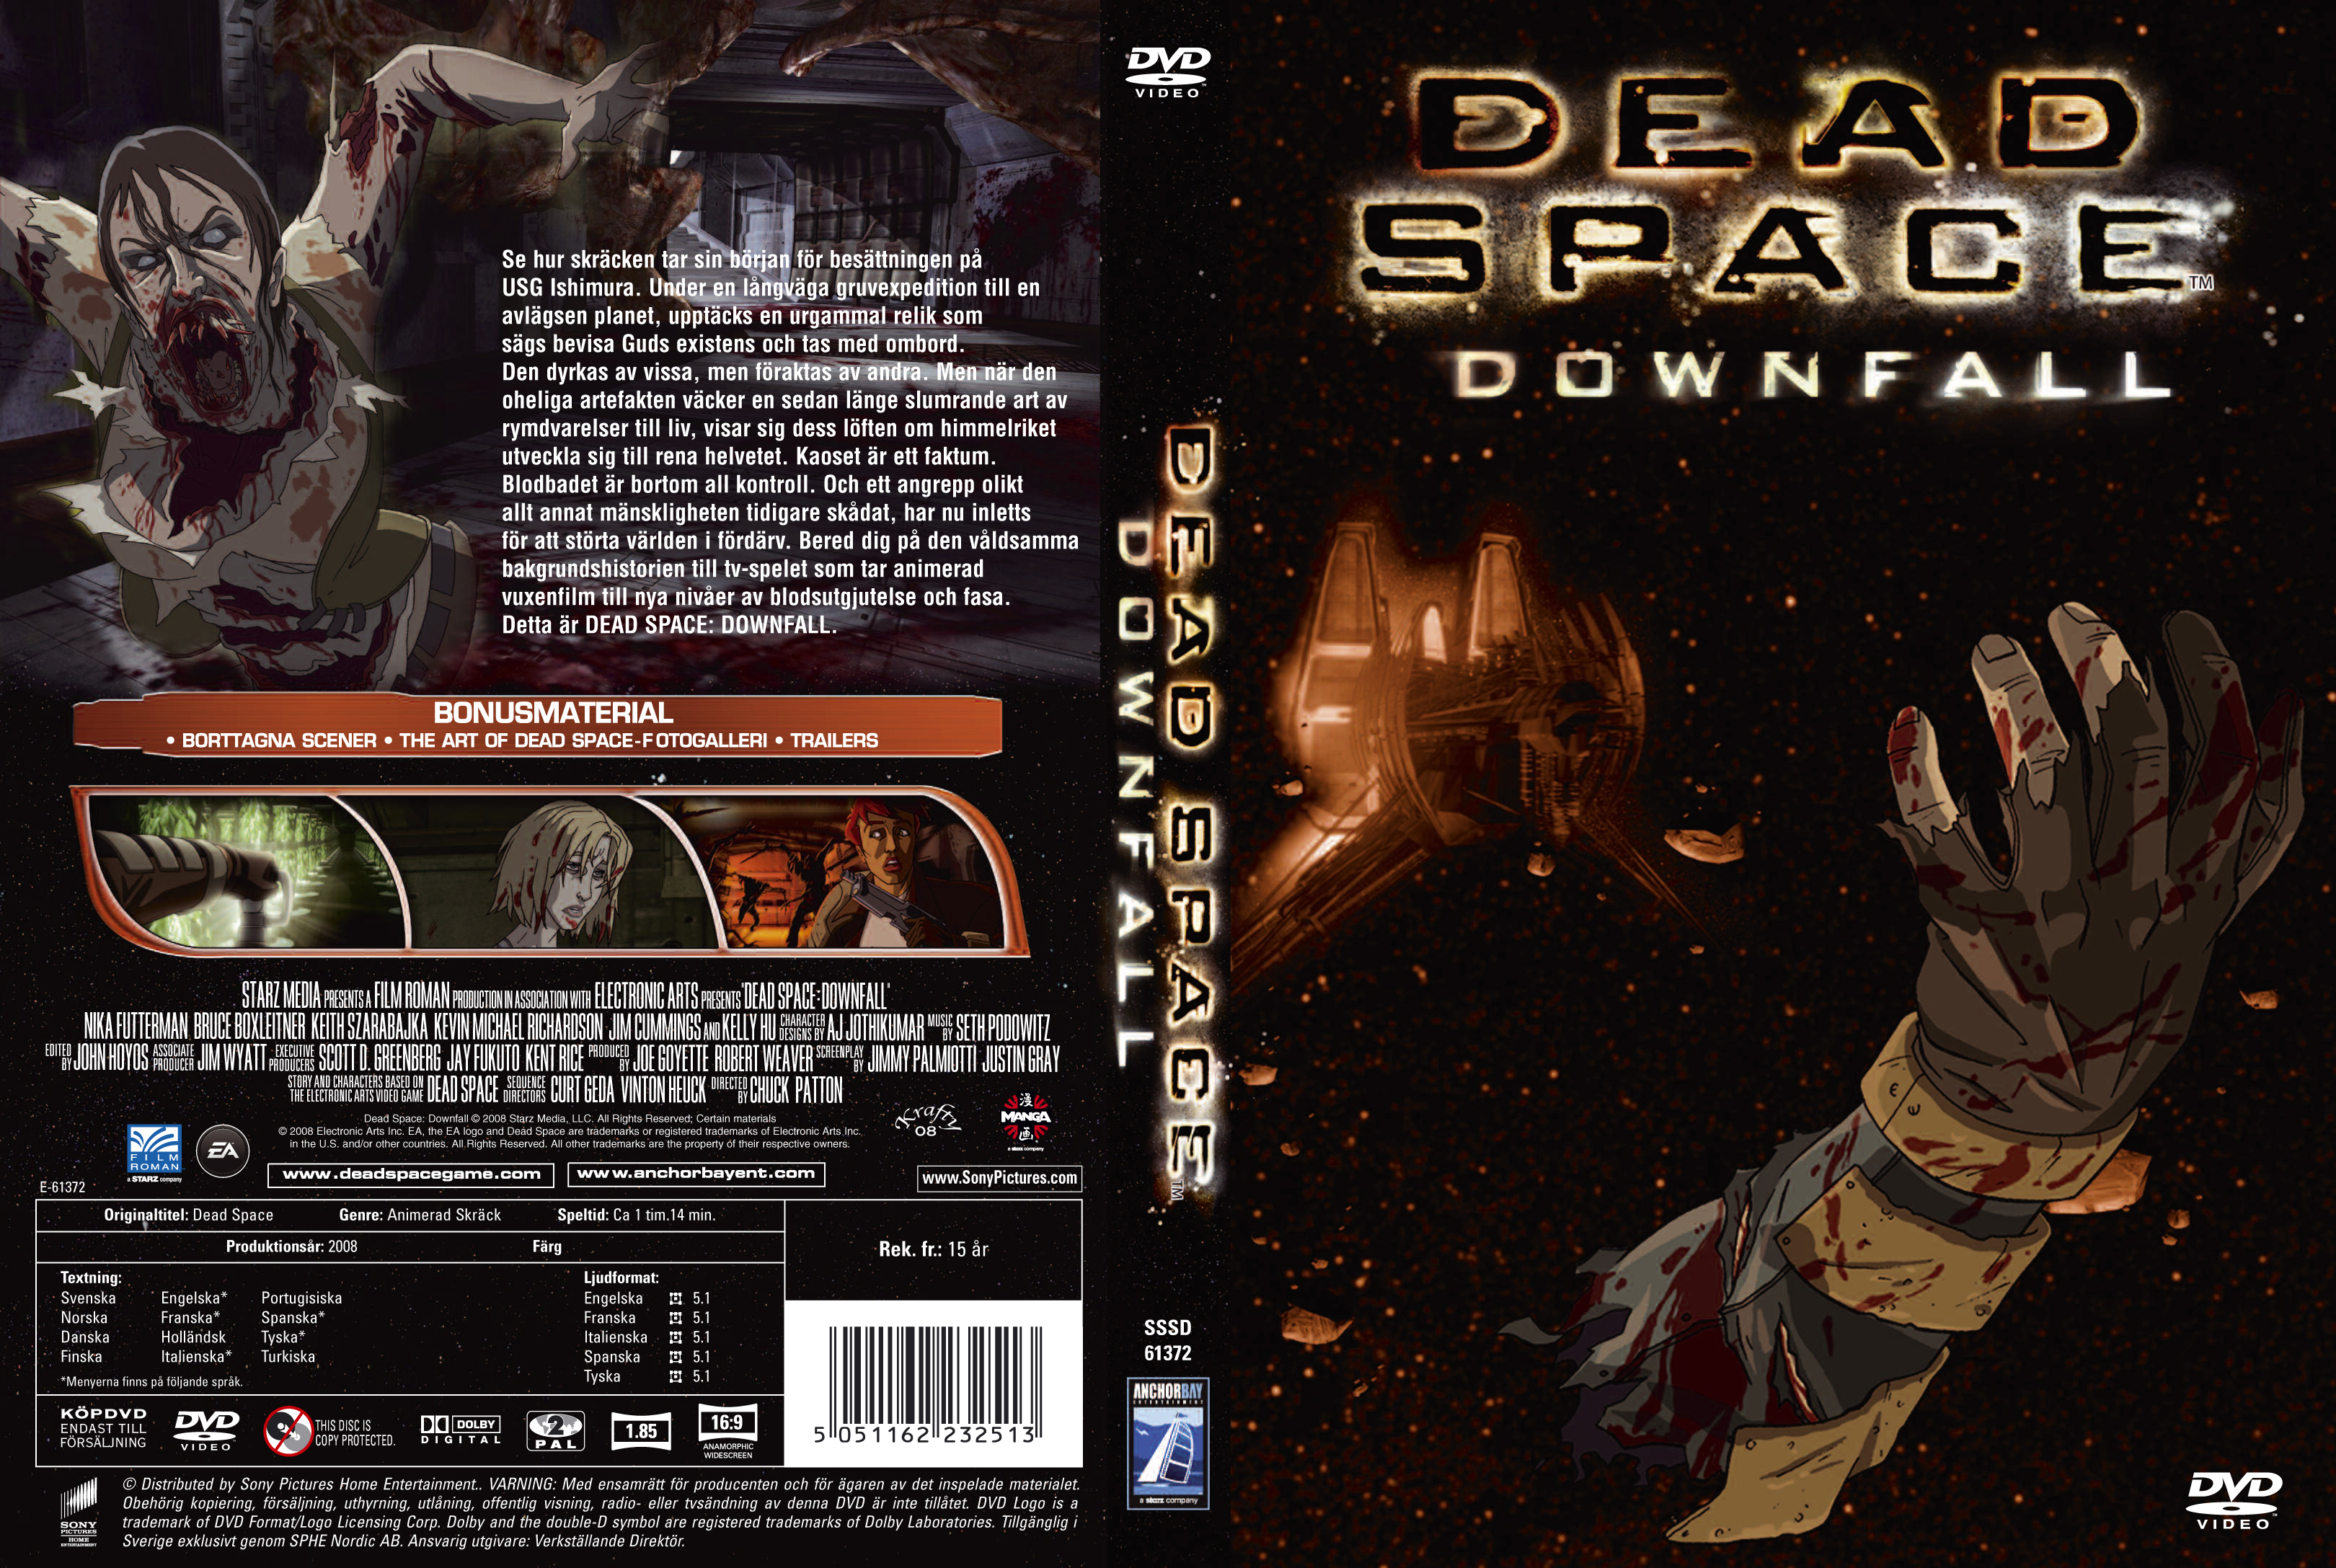 Deadspace Swe Dvd Covers Cover Century Over 500 000 Album